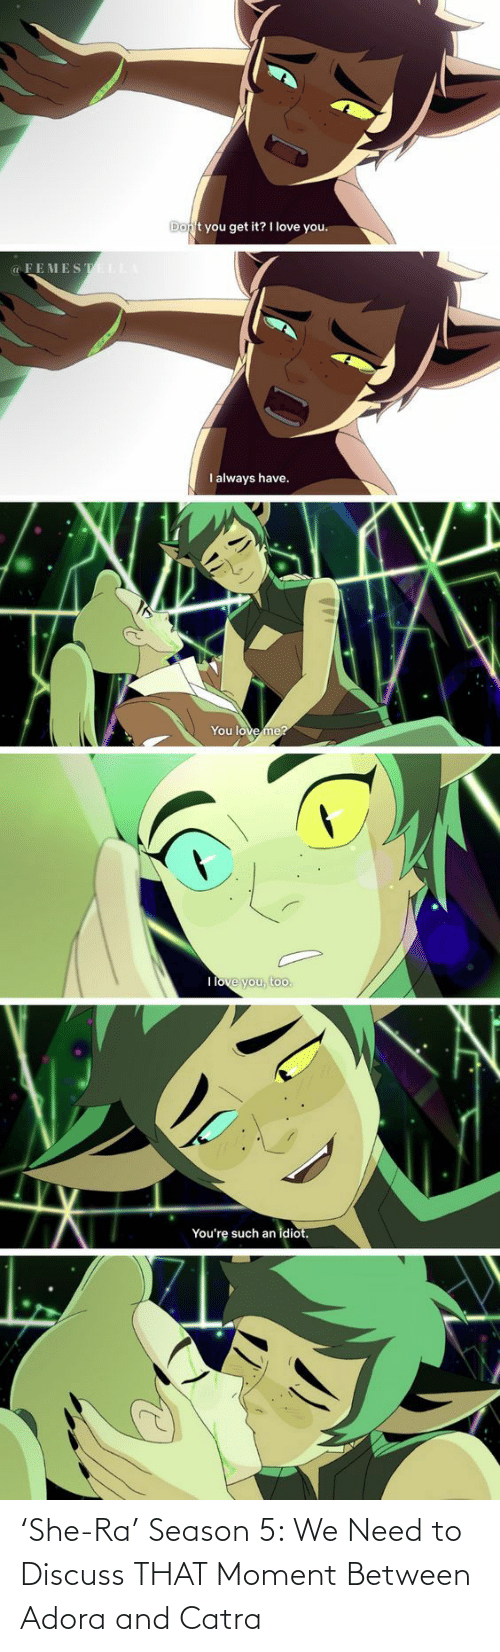 princesses: 'She-Ra' Season 5: We Need to Discuss THAT Moment Between Adora and Catra